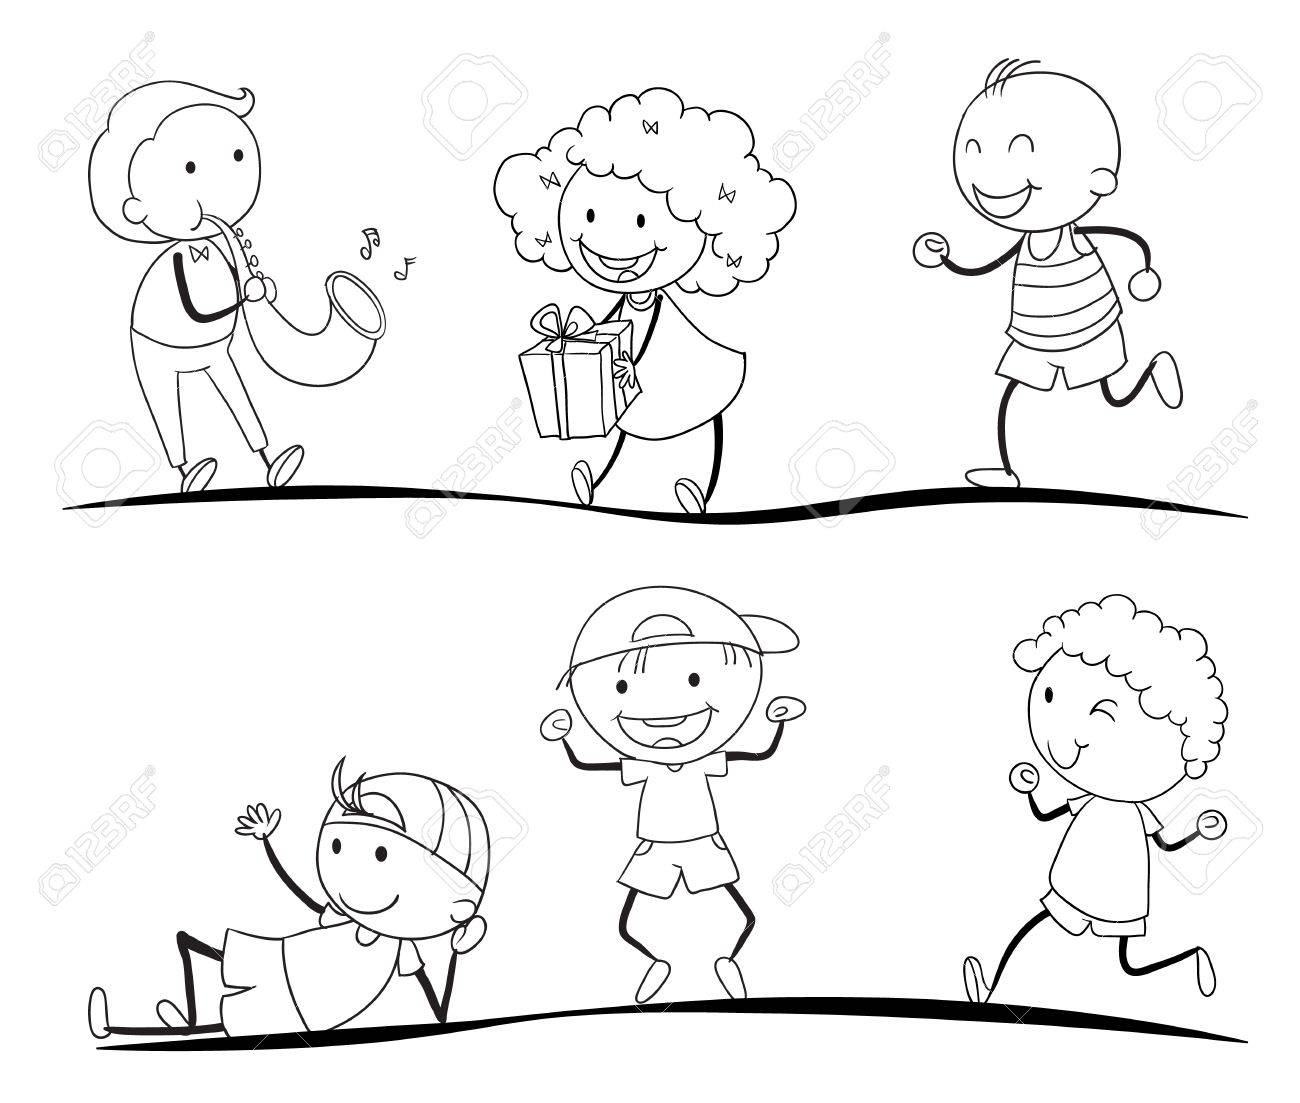 vector illustration of a sketches of kids on a white background - Kids Sketches